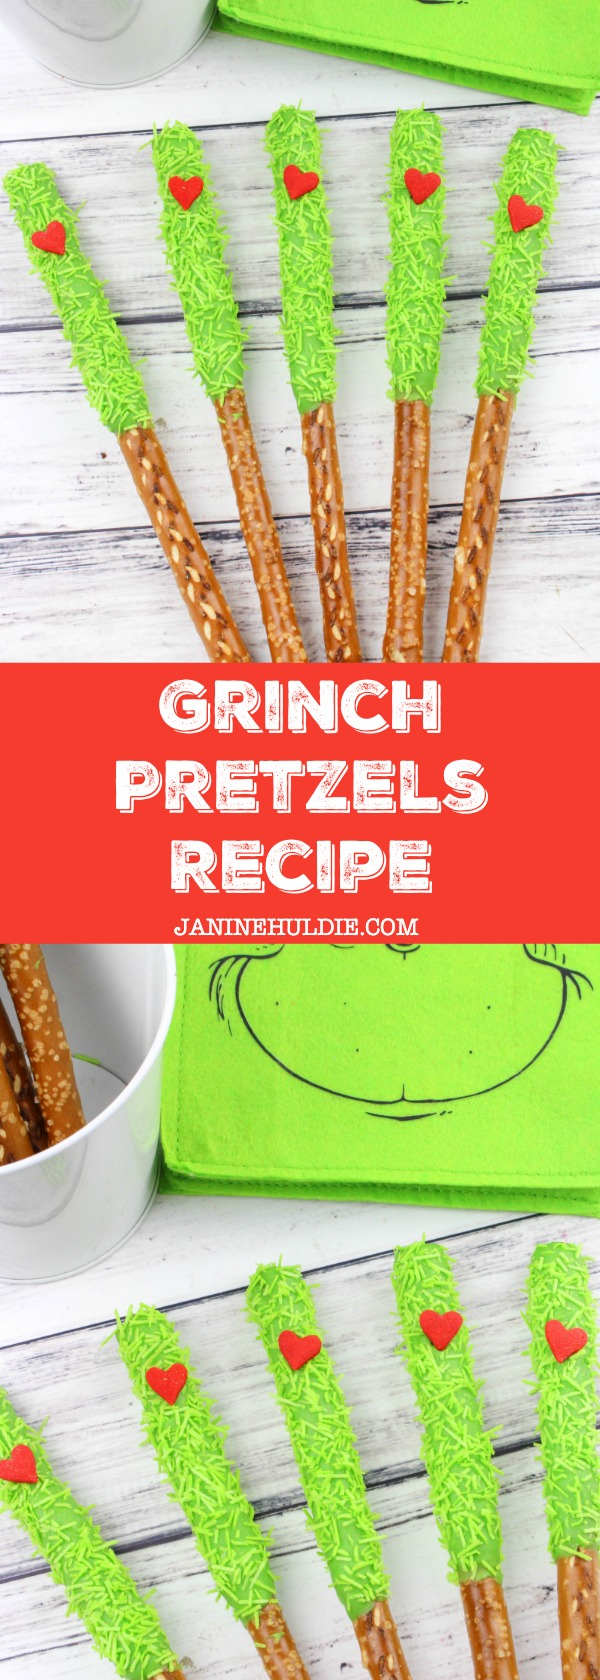 Grinch Pretzels Recipe